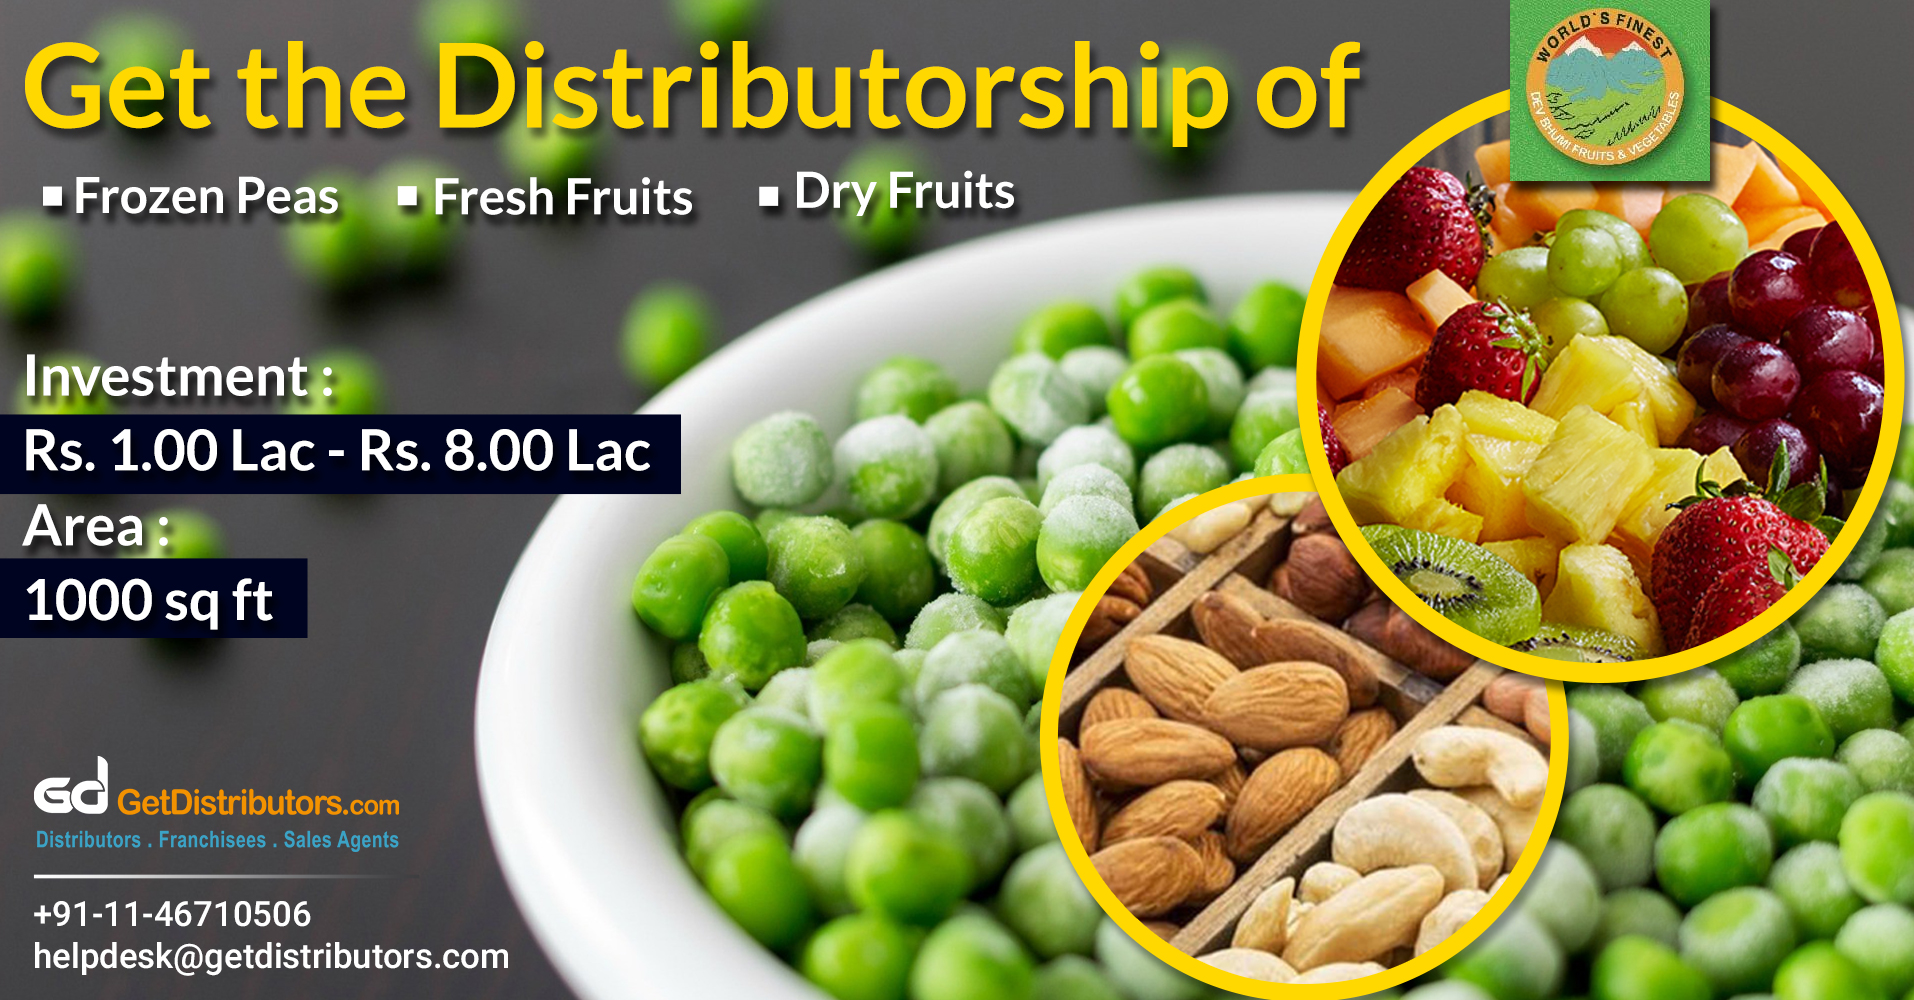 Get Distributorship Of Pure & Healthy Frozen Peas, Dry Fruits Etc